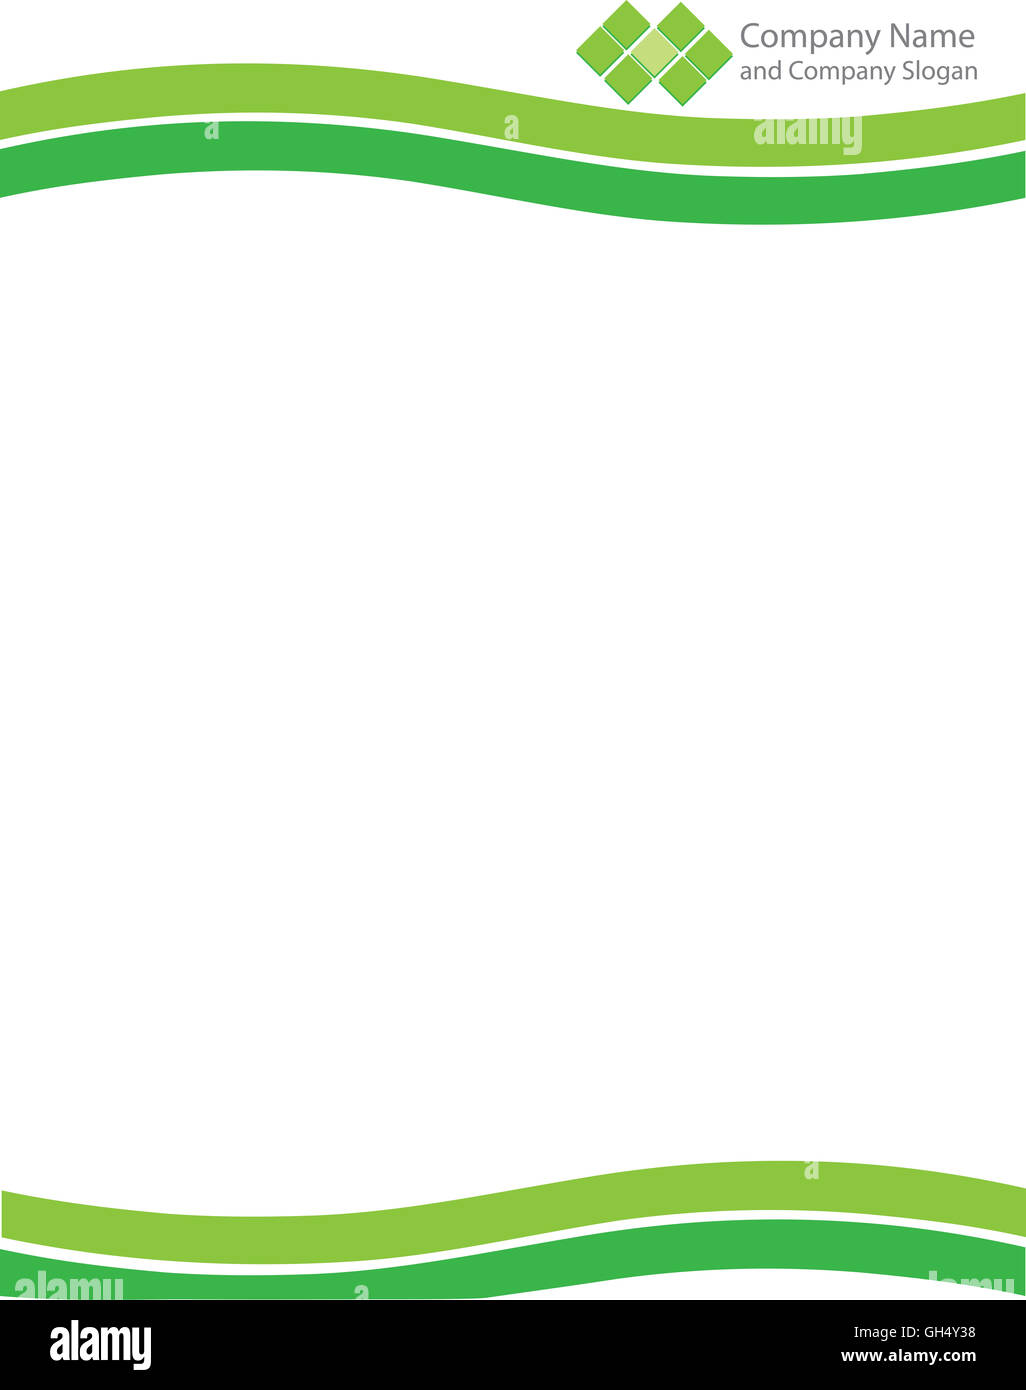 Green Wave Letterhead Template with Logo - Stock Image